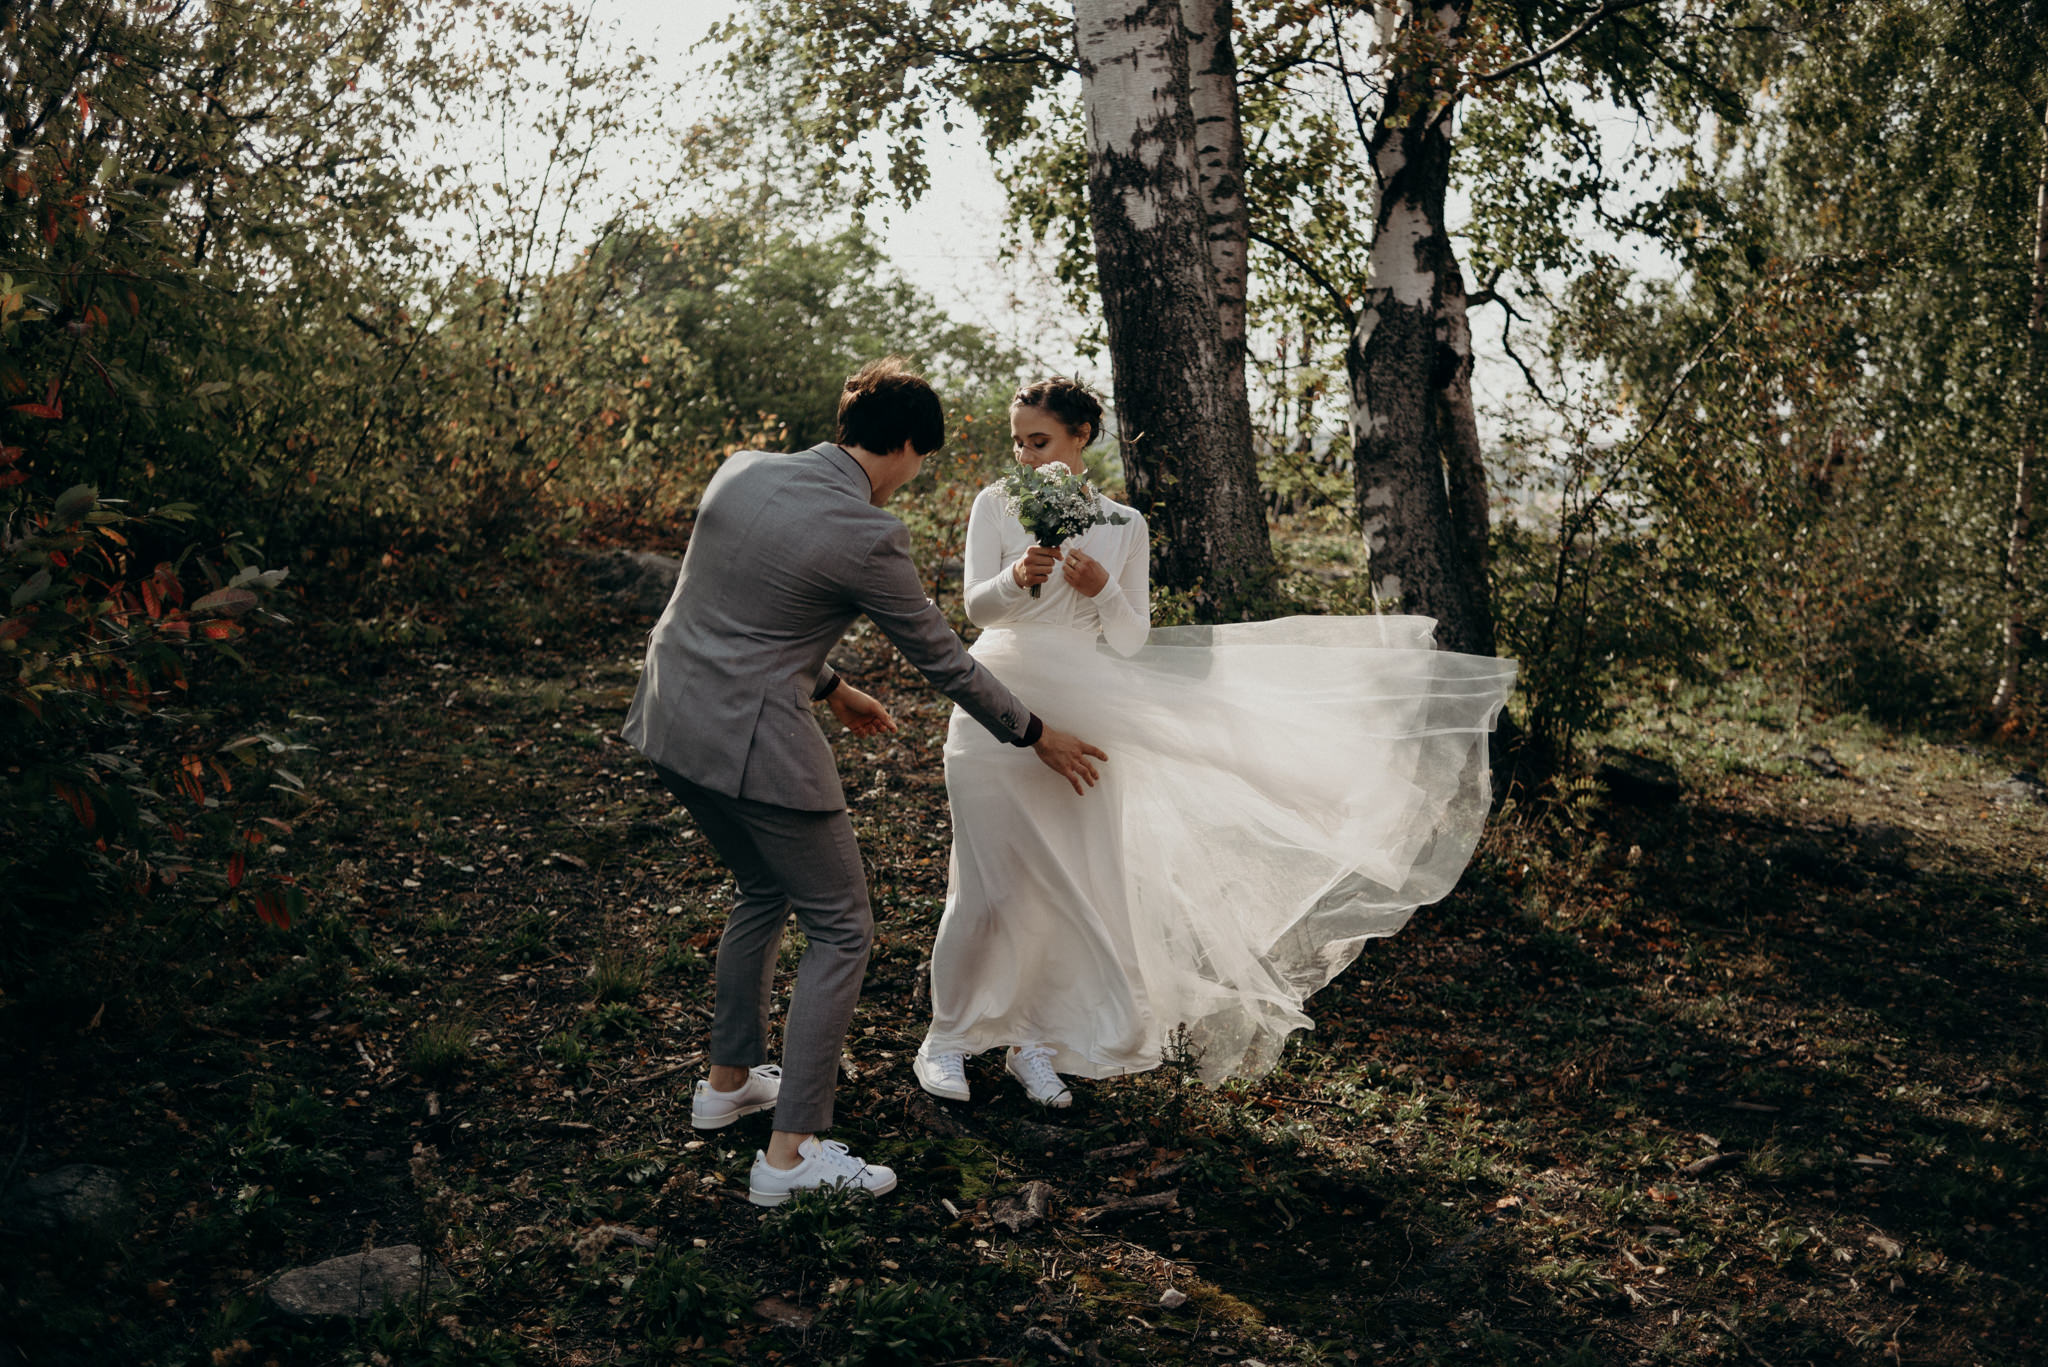 groom adjusting brides dress that is blowing in wind as they stand among trees in the sunlight